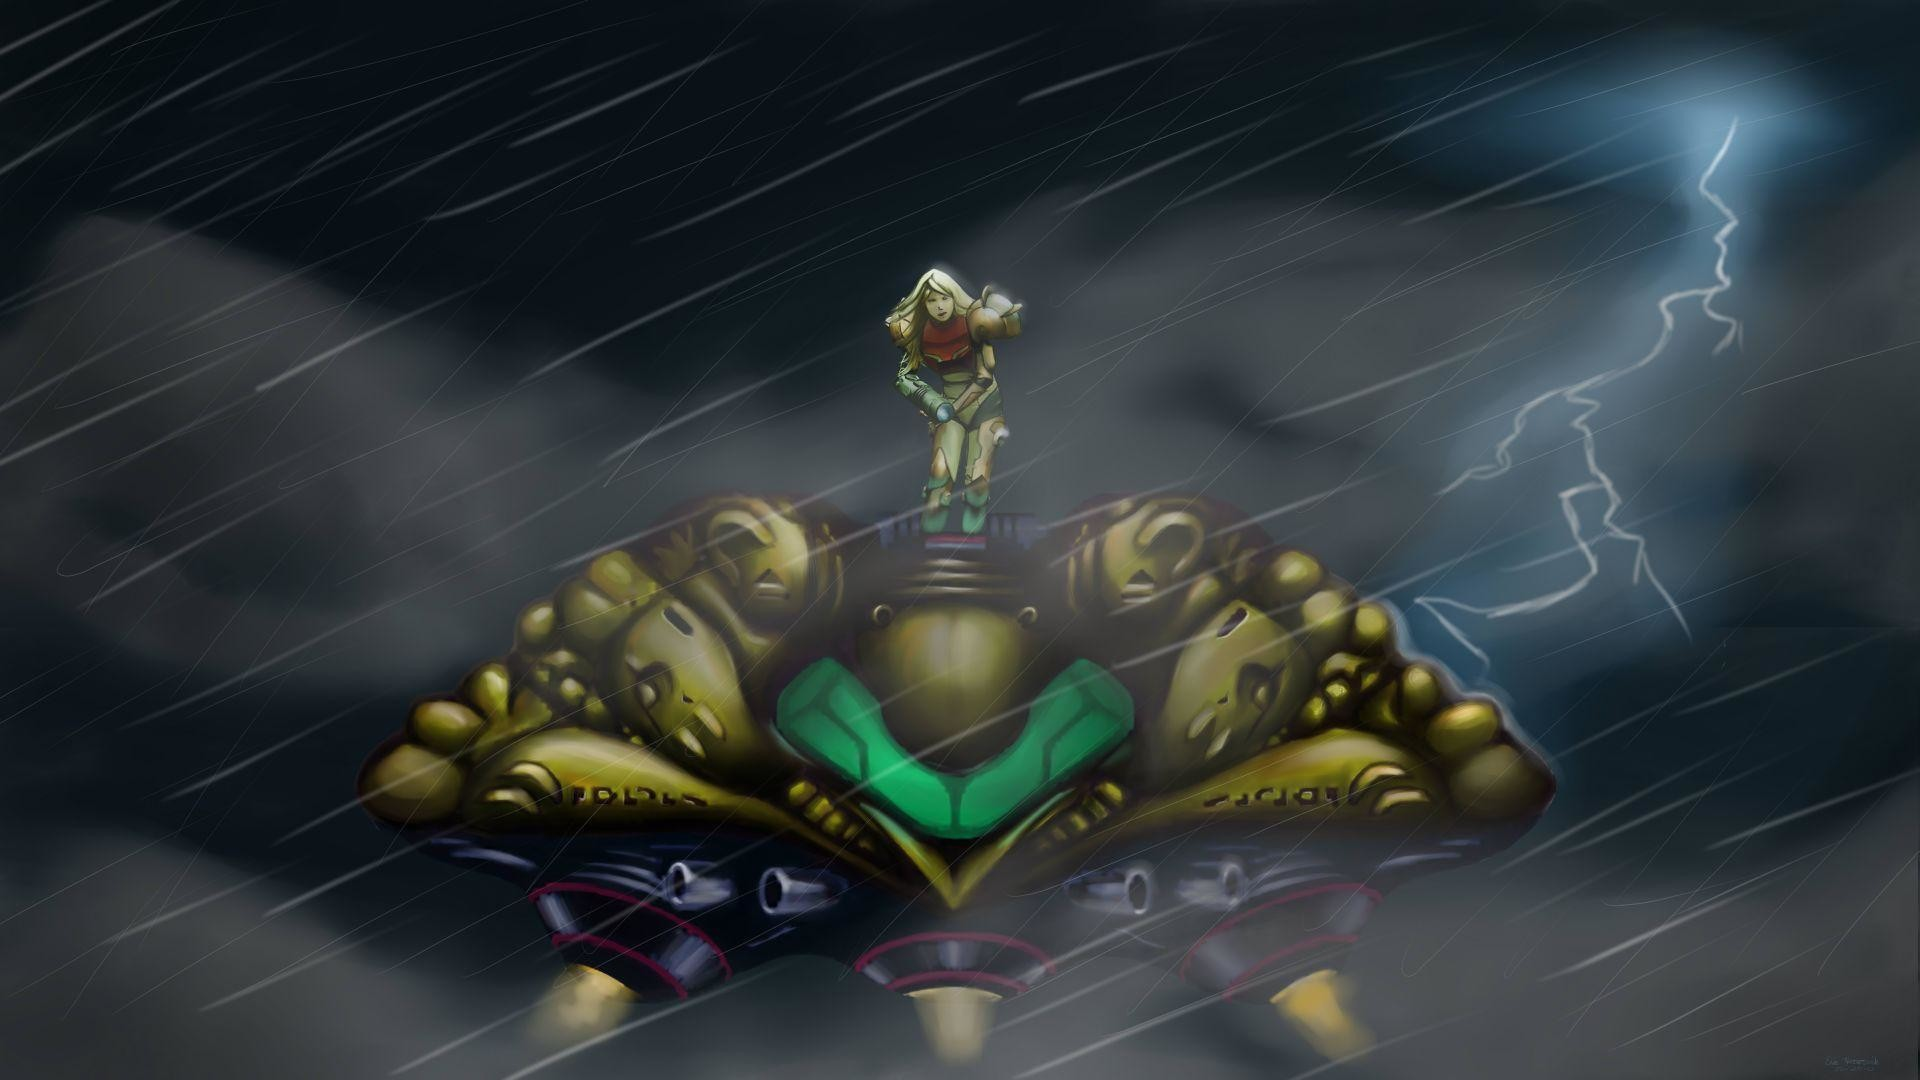 Wallpapers For > Super Metroid Wallpaper 1920×1080